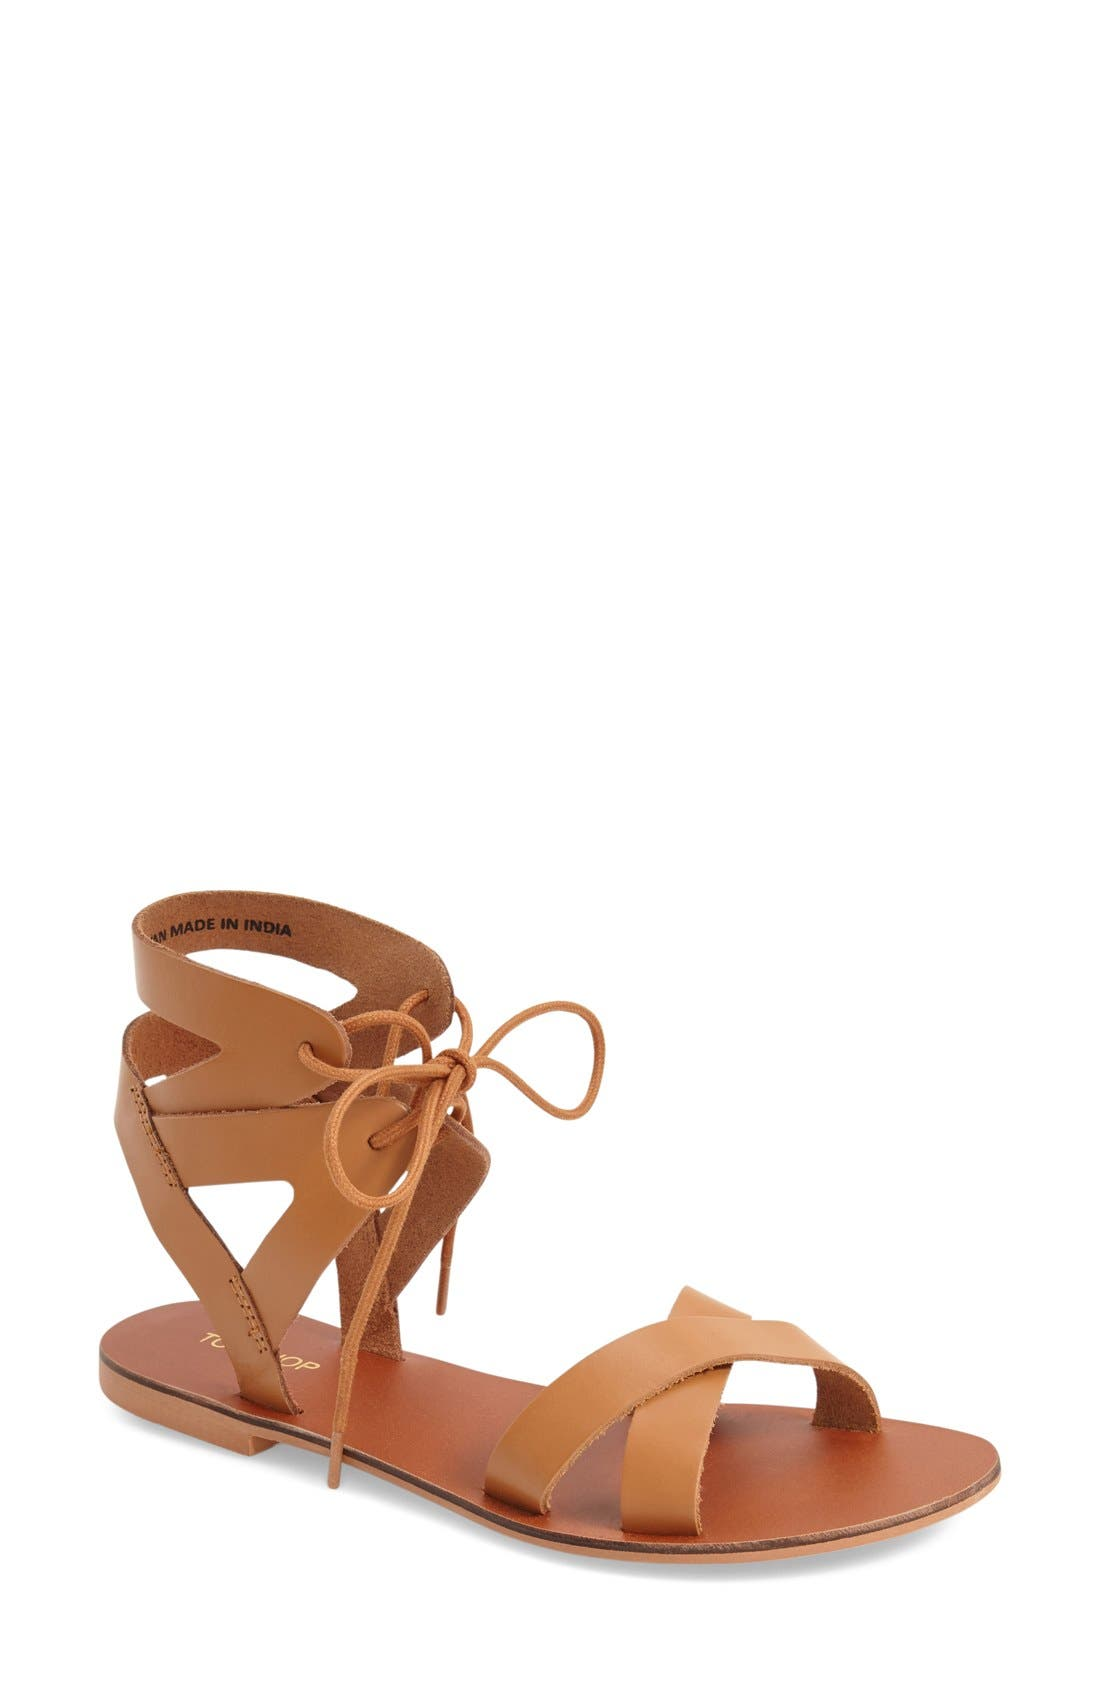 Alternate Image 1 Selected - Topshop 'Herb' Lace-Up Flat Sandal (Women)